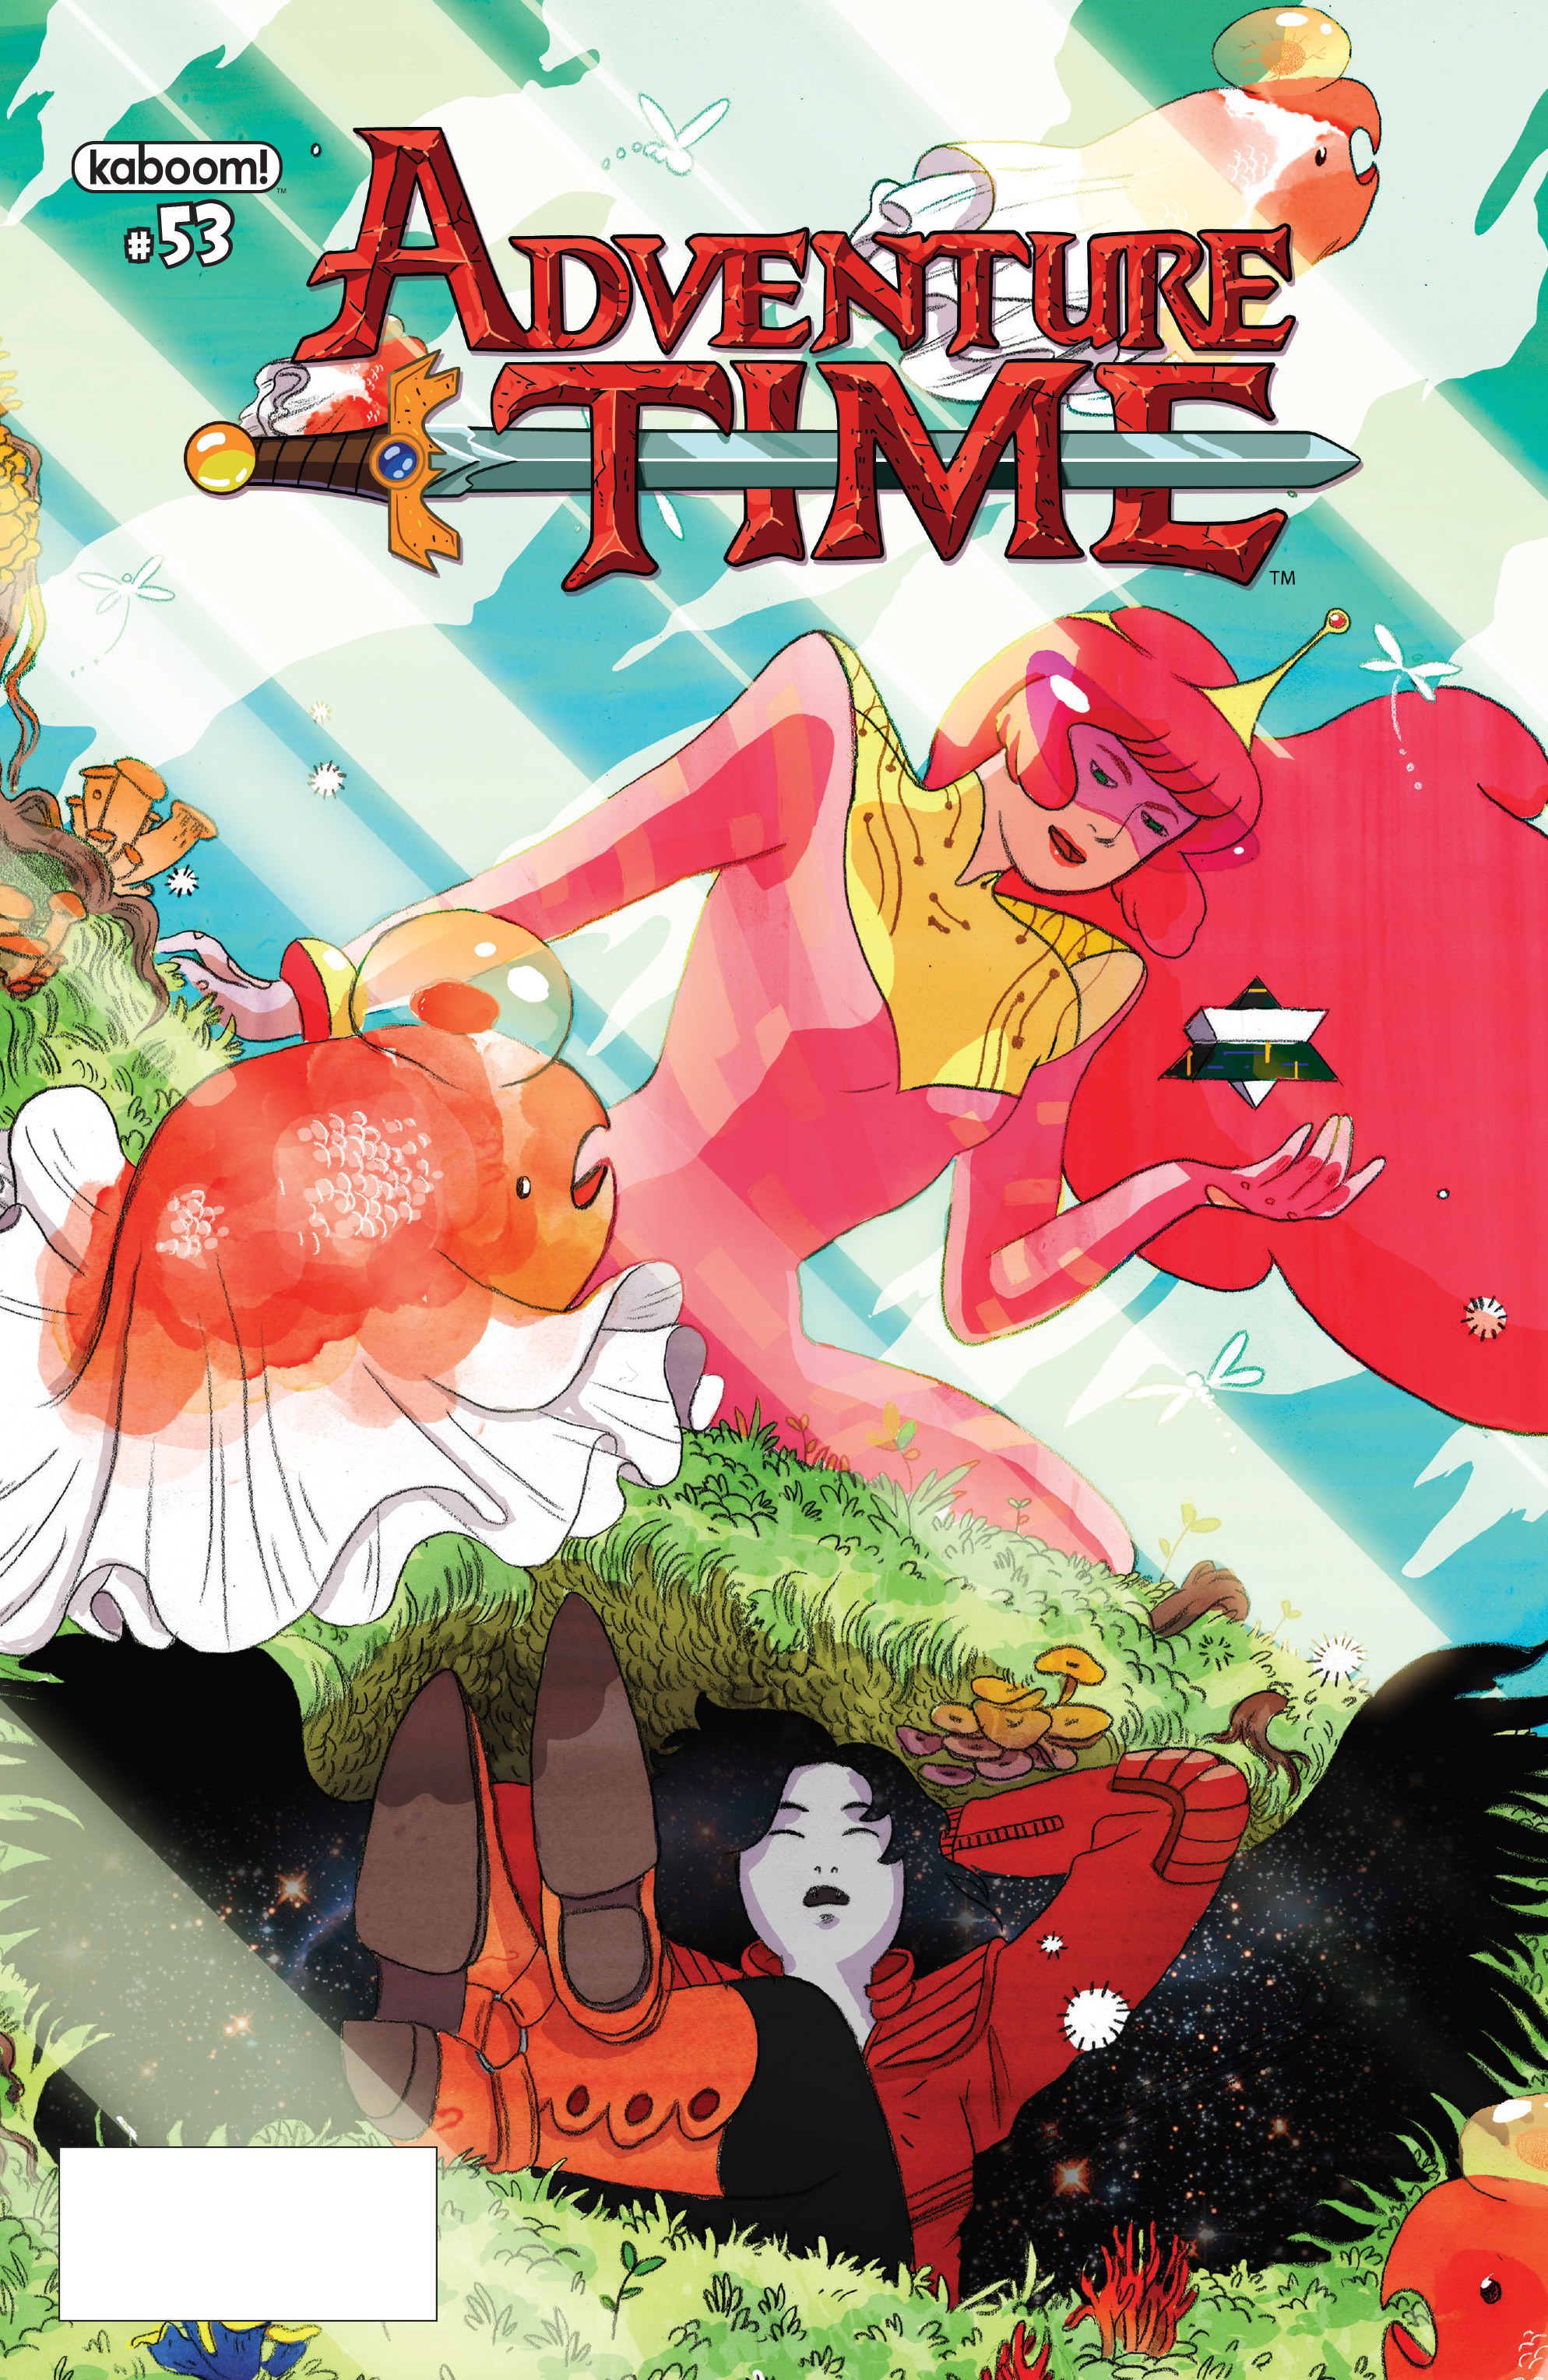 Read online Adventure Time comic -  Issue #53 - 1